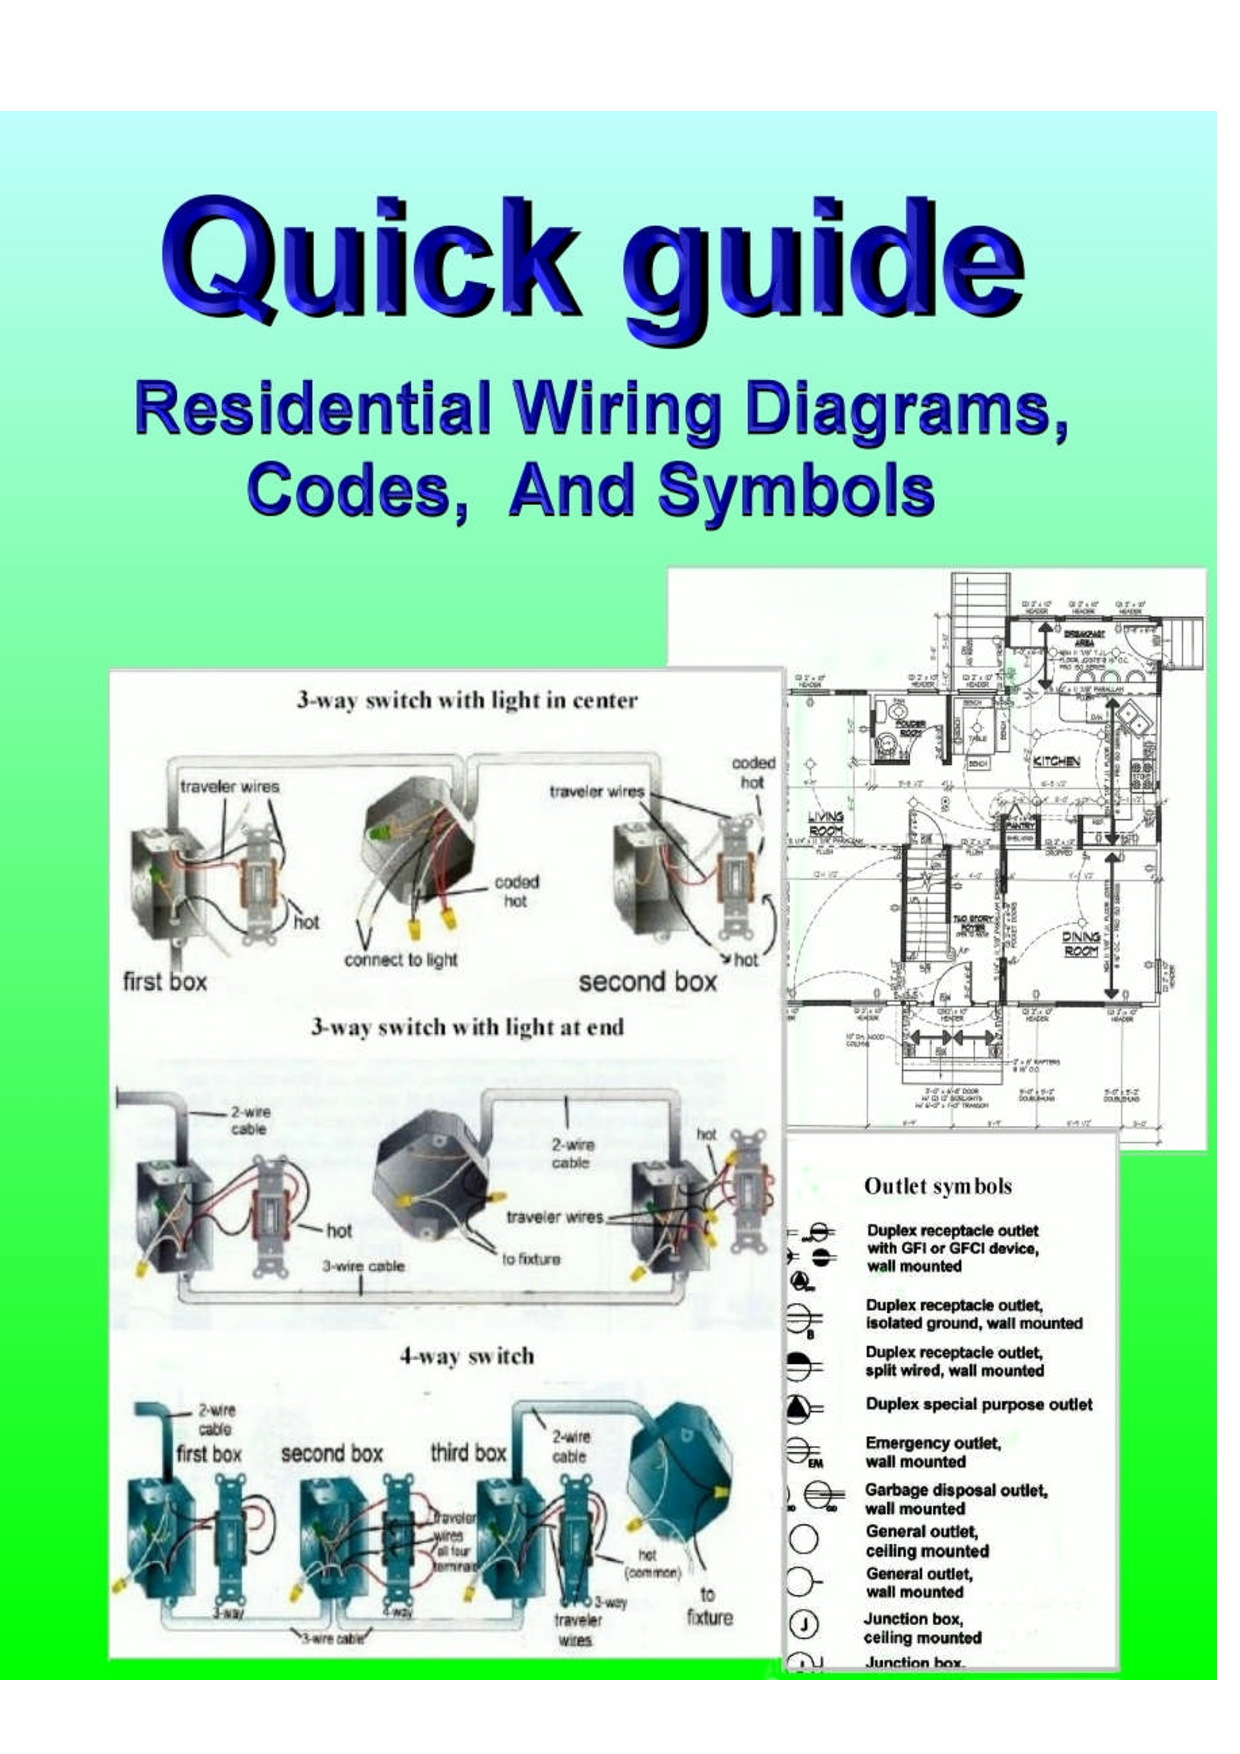 Home Electrical Wiring Diagrams Home Electrical Wiring Residential Electrical Electrical Wiring